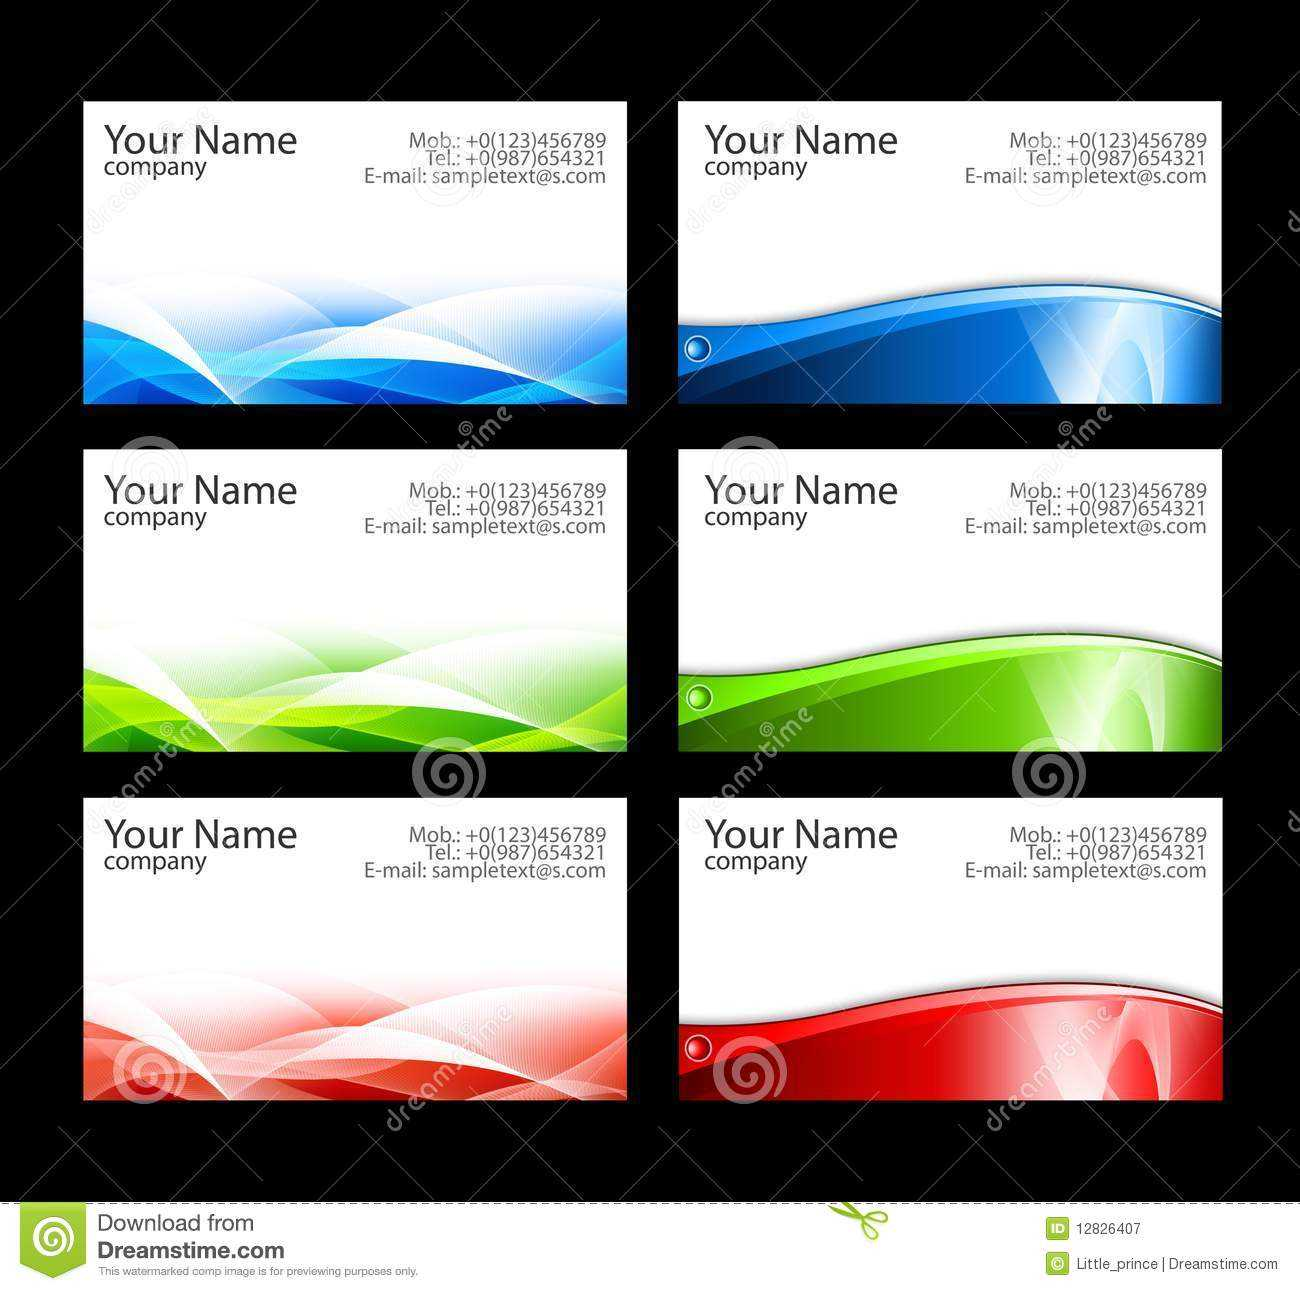 Business Cards Templates Stock Illustration. Illustration Of For Free Template Business Cards To Print